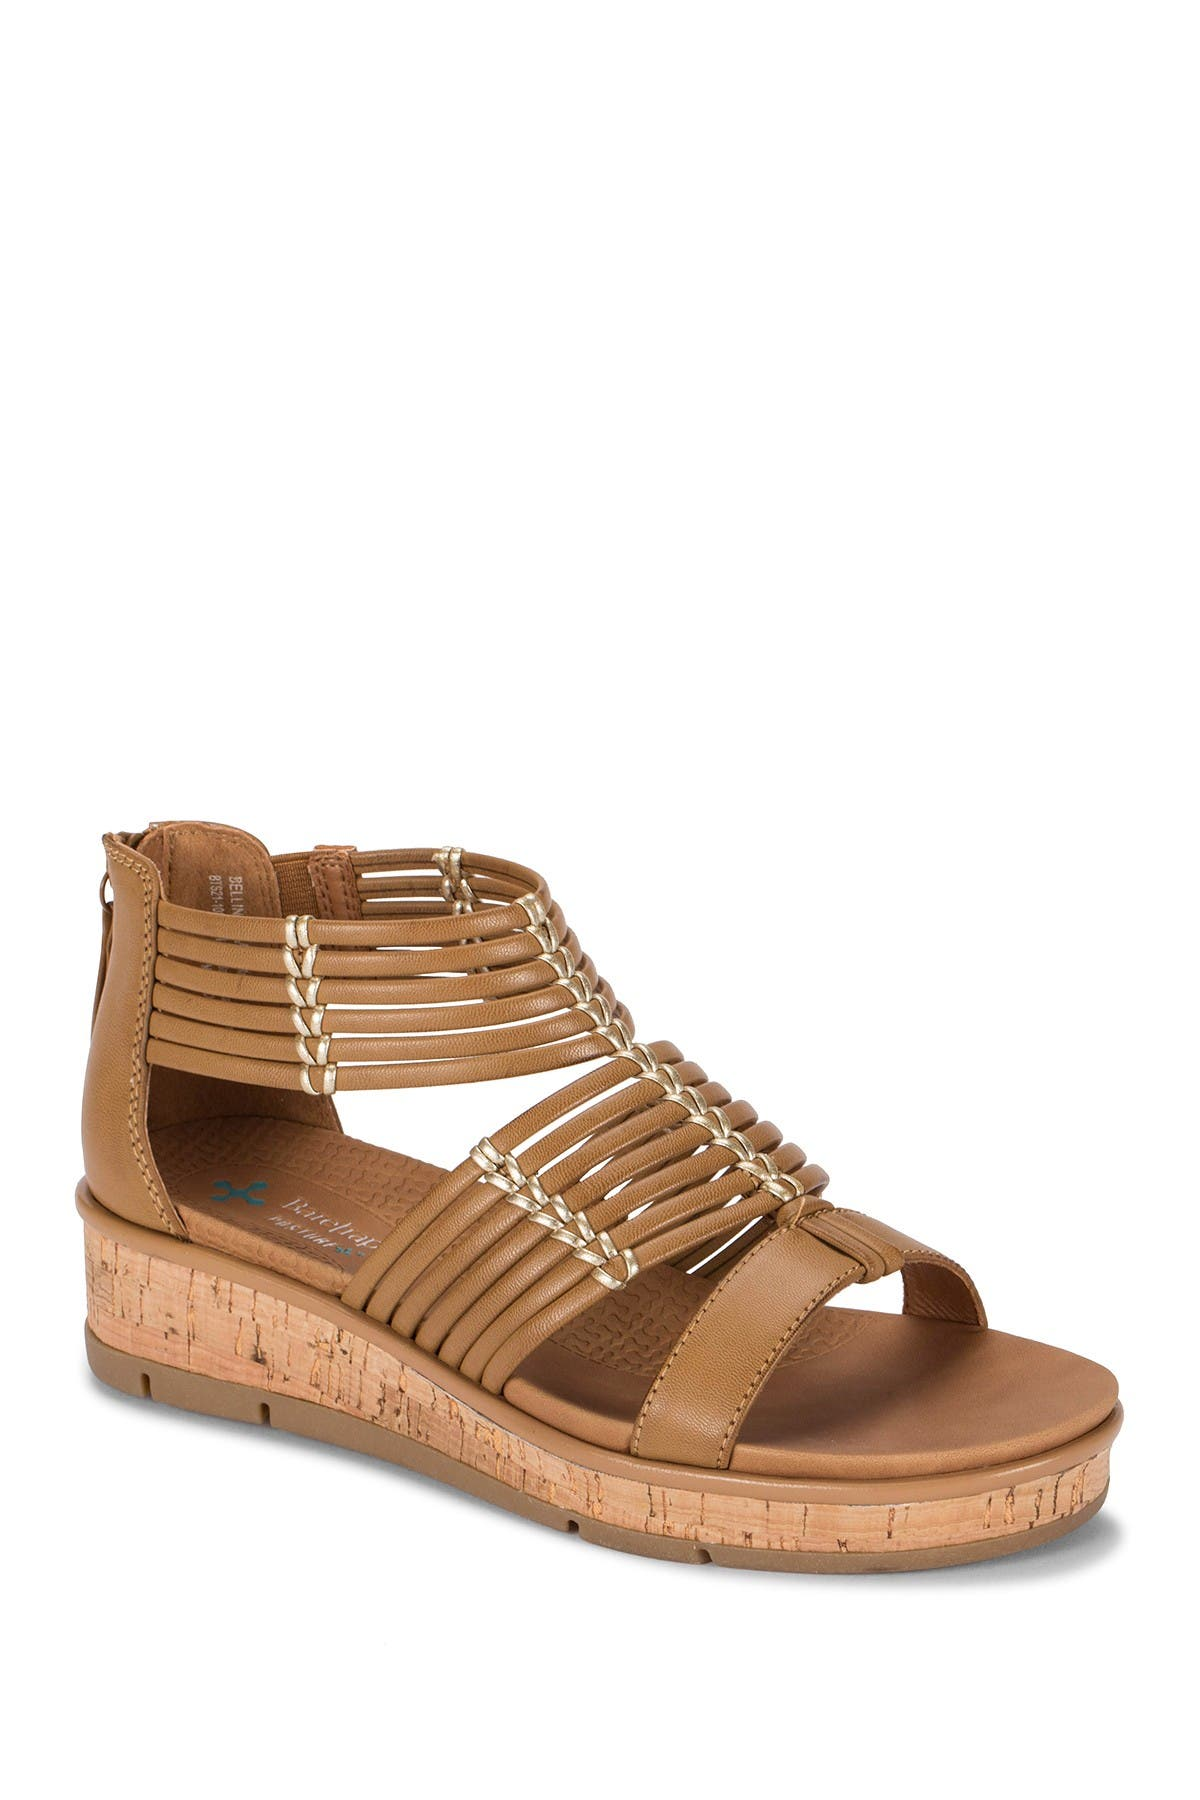 Baretraps BELLINI STRAPPY WEDGE SANDAL